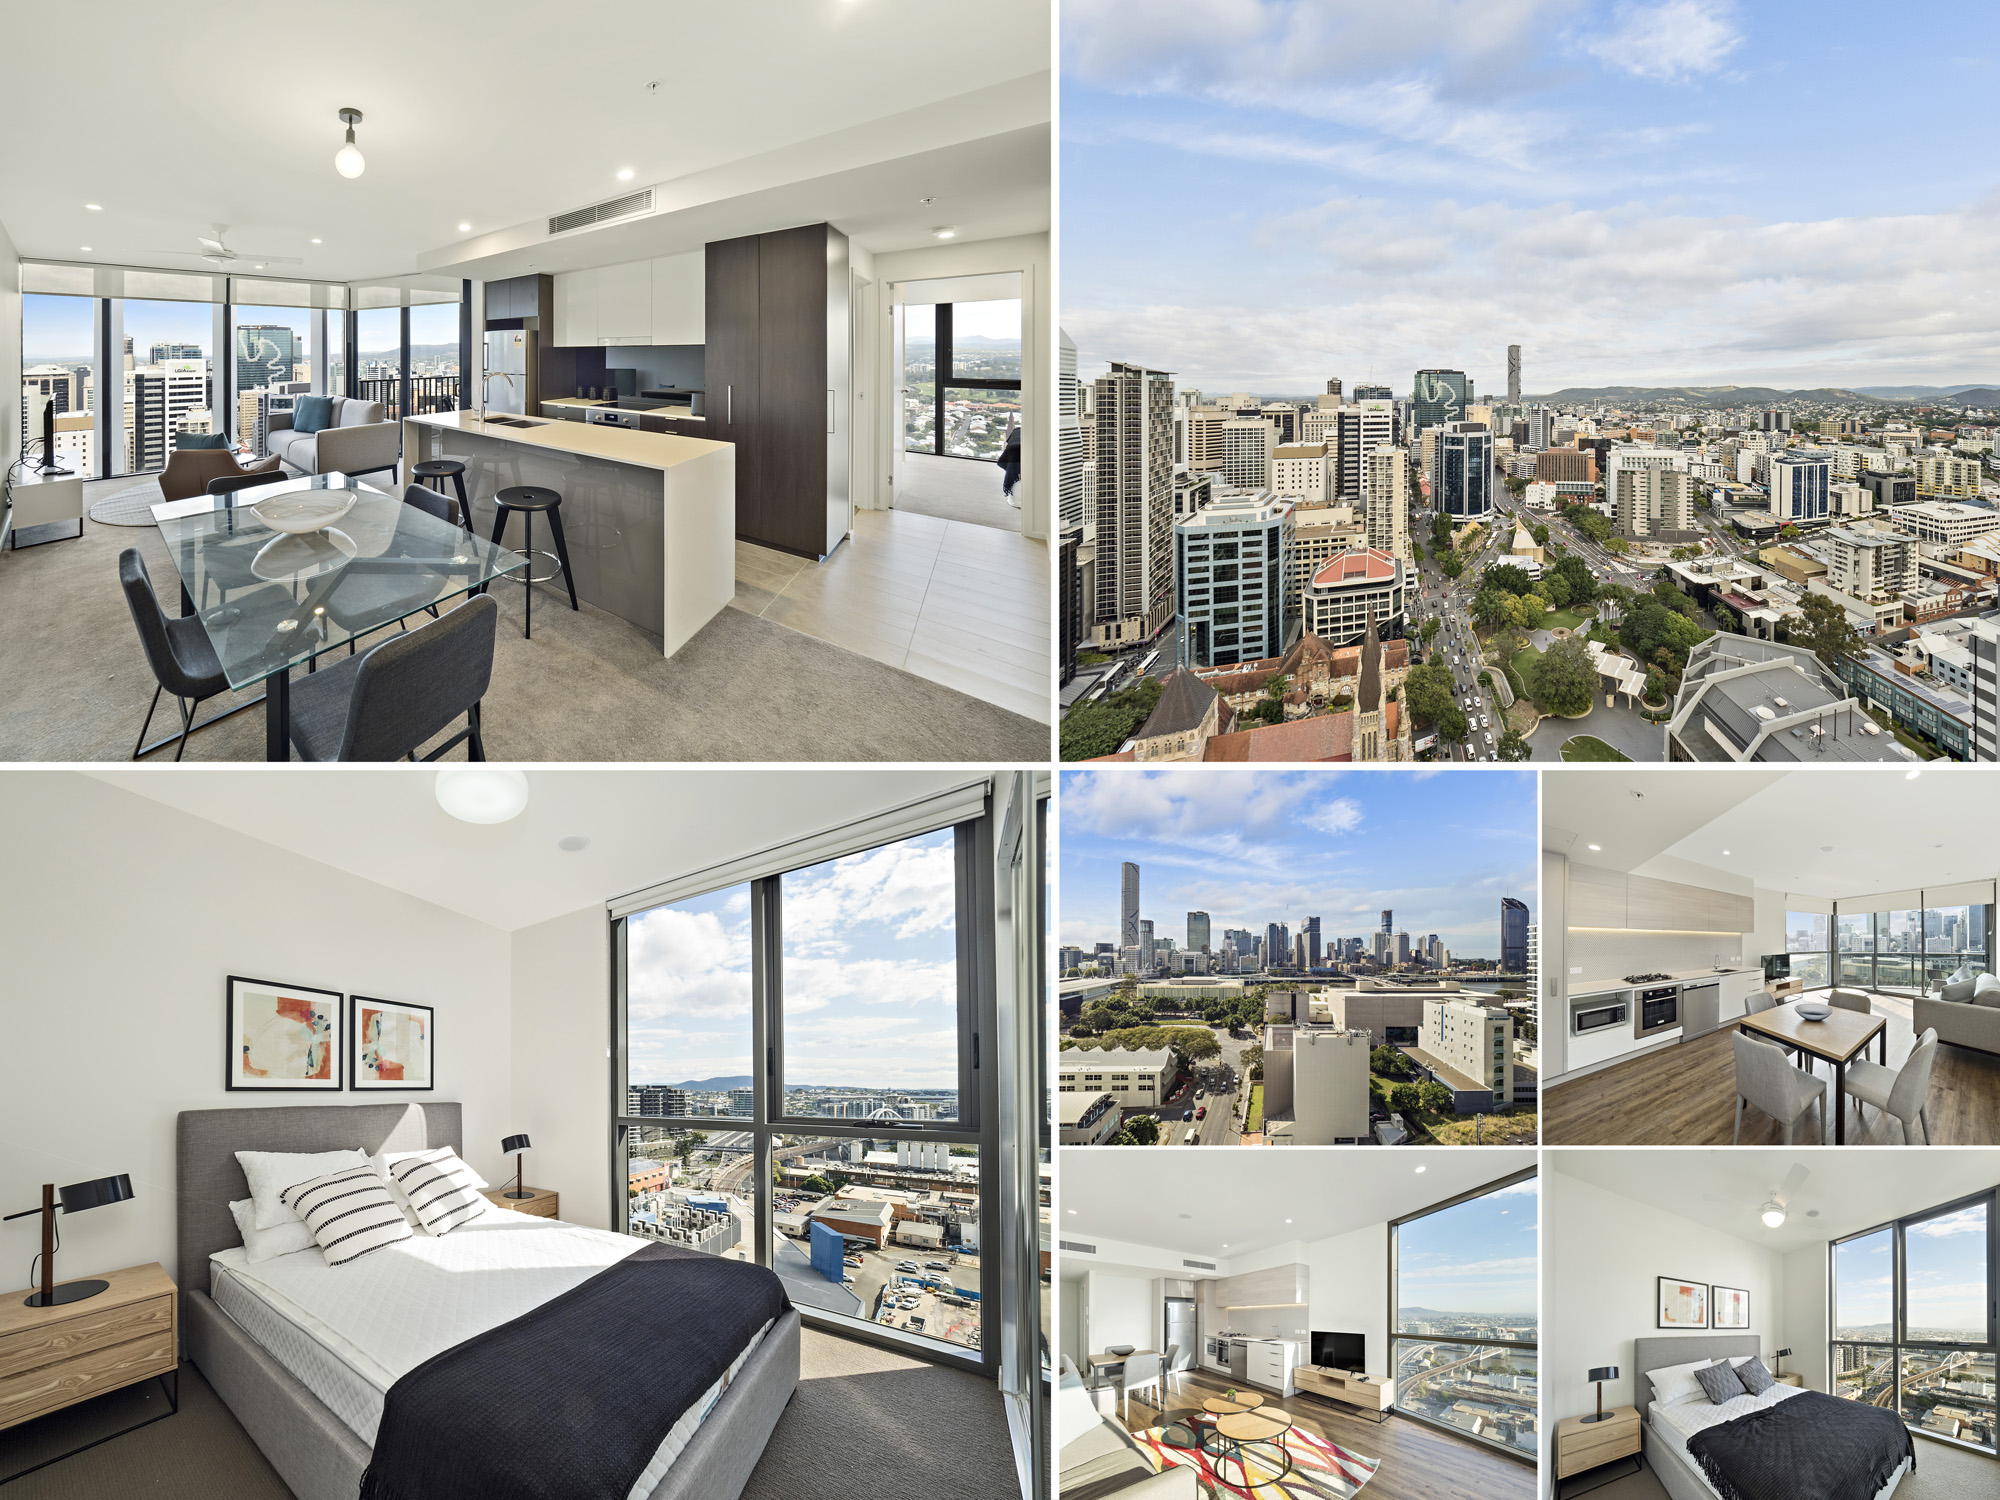 Brisbane apartment real estate photography by Phil Savory